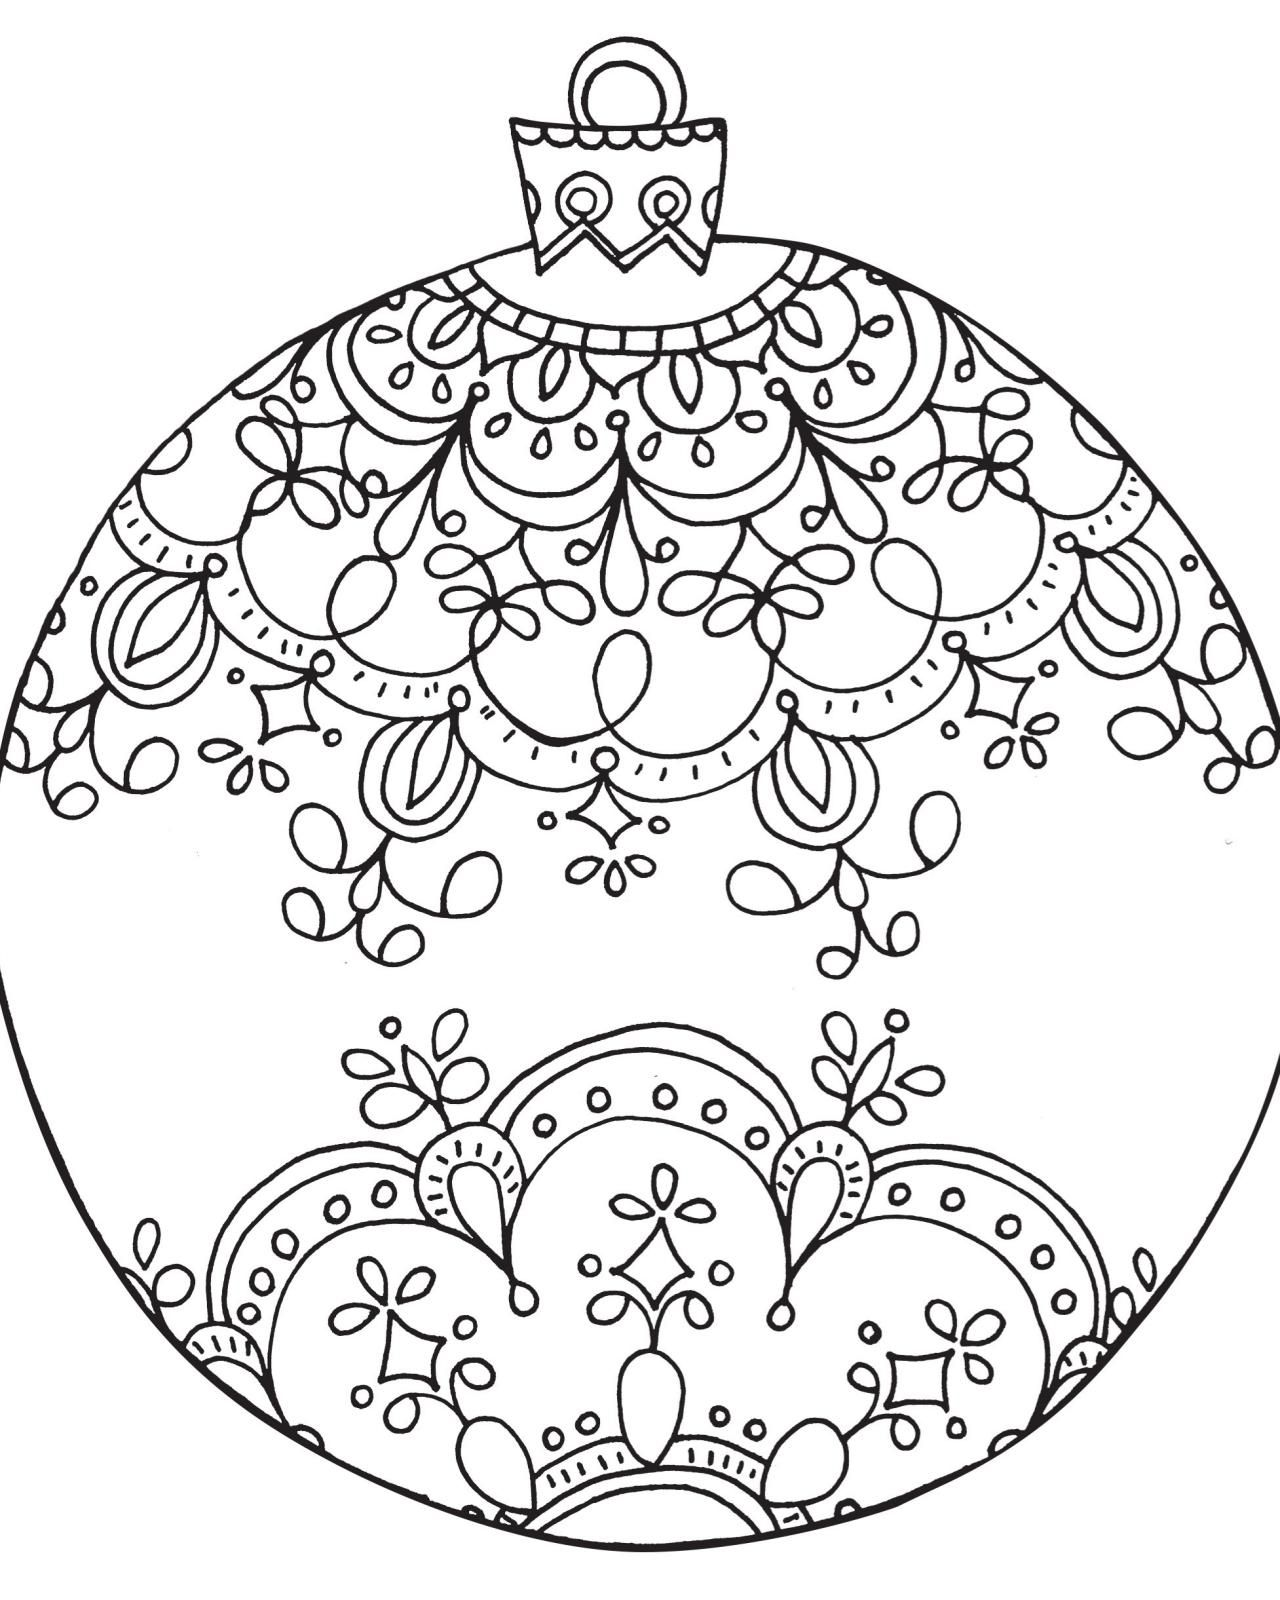 Christmas Dragon Coloring Pages With Free Printable For Adults Diy Craft Projects